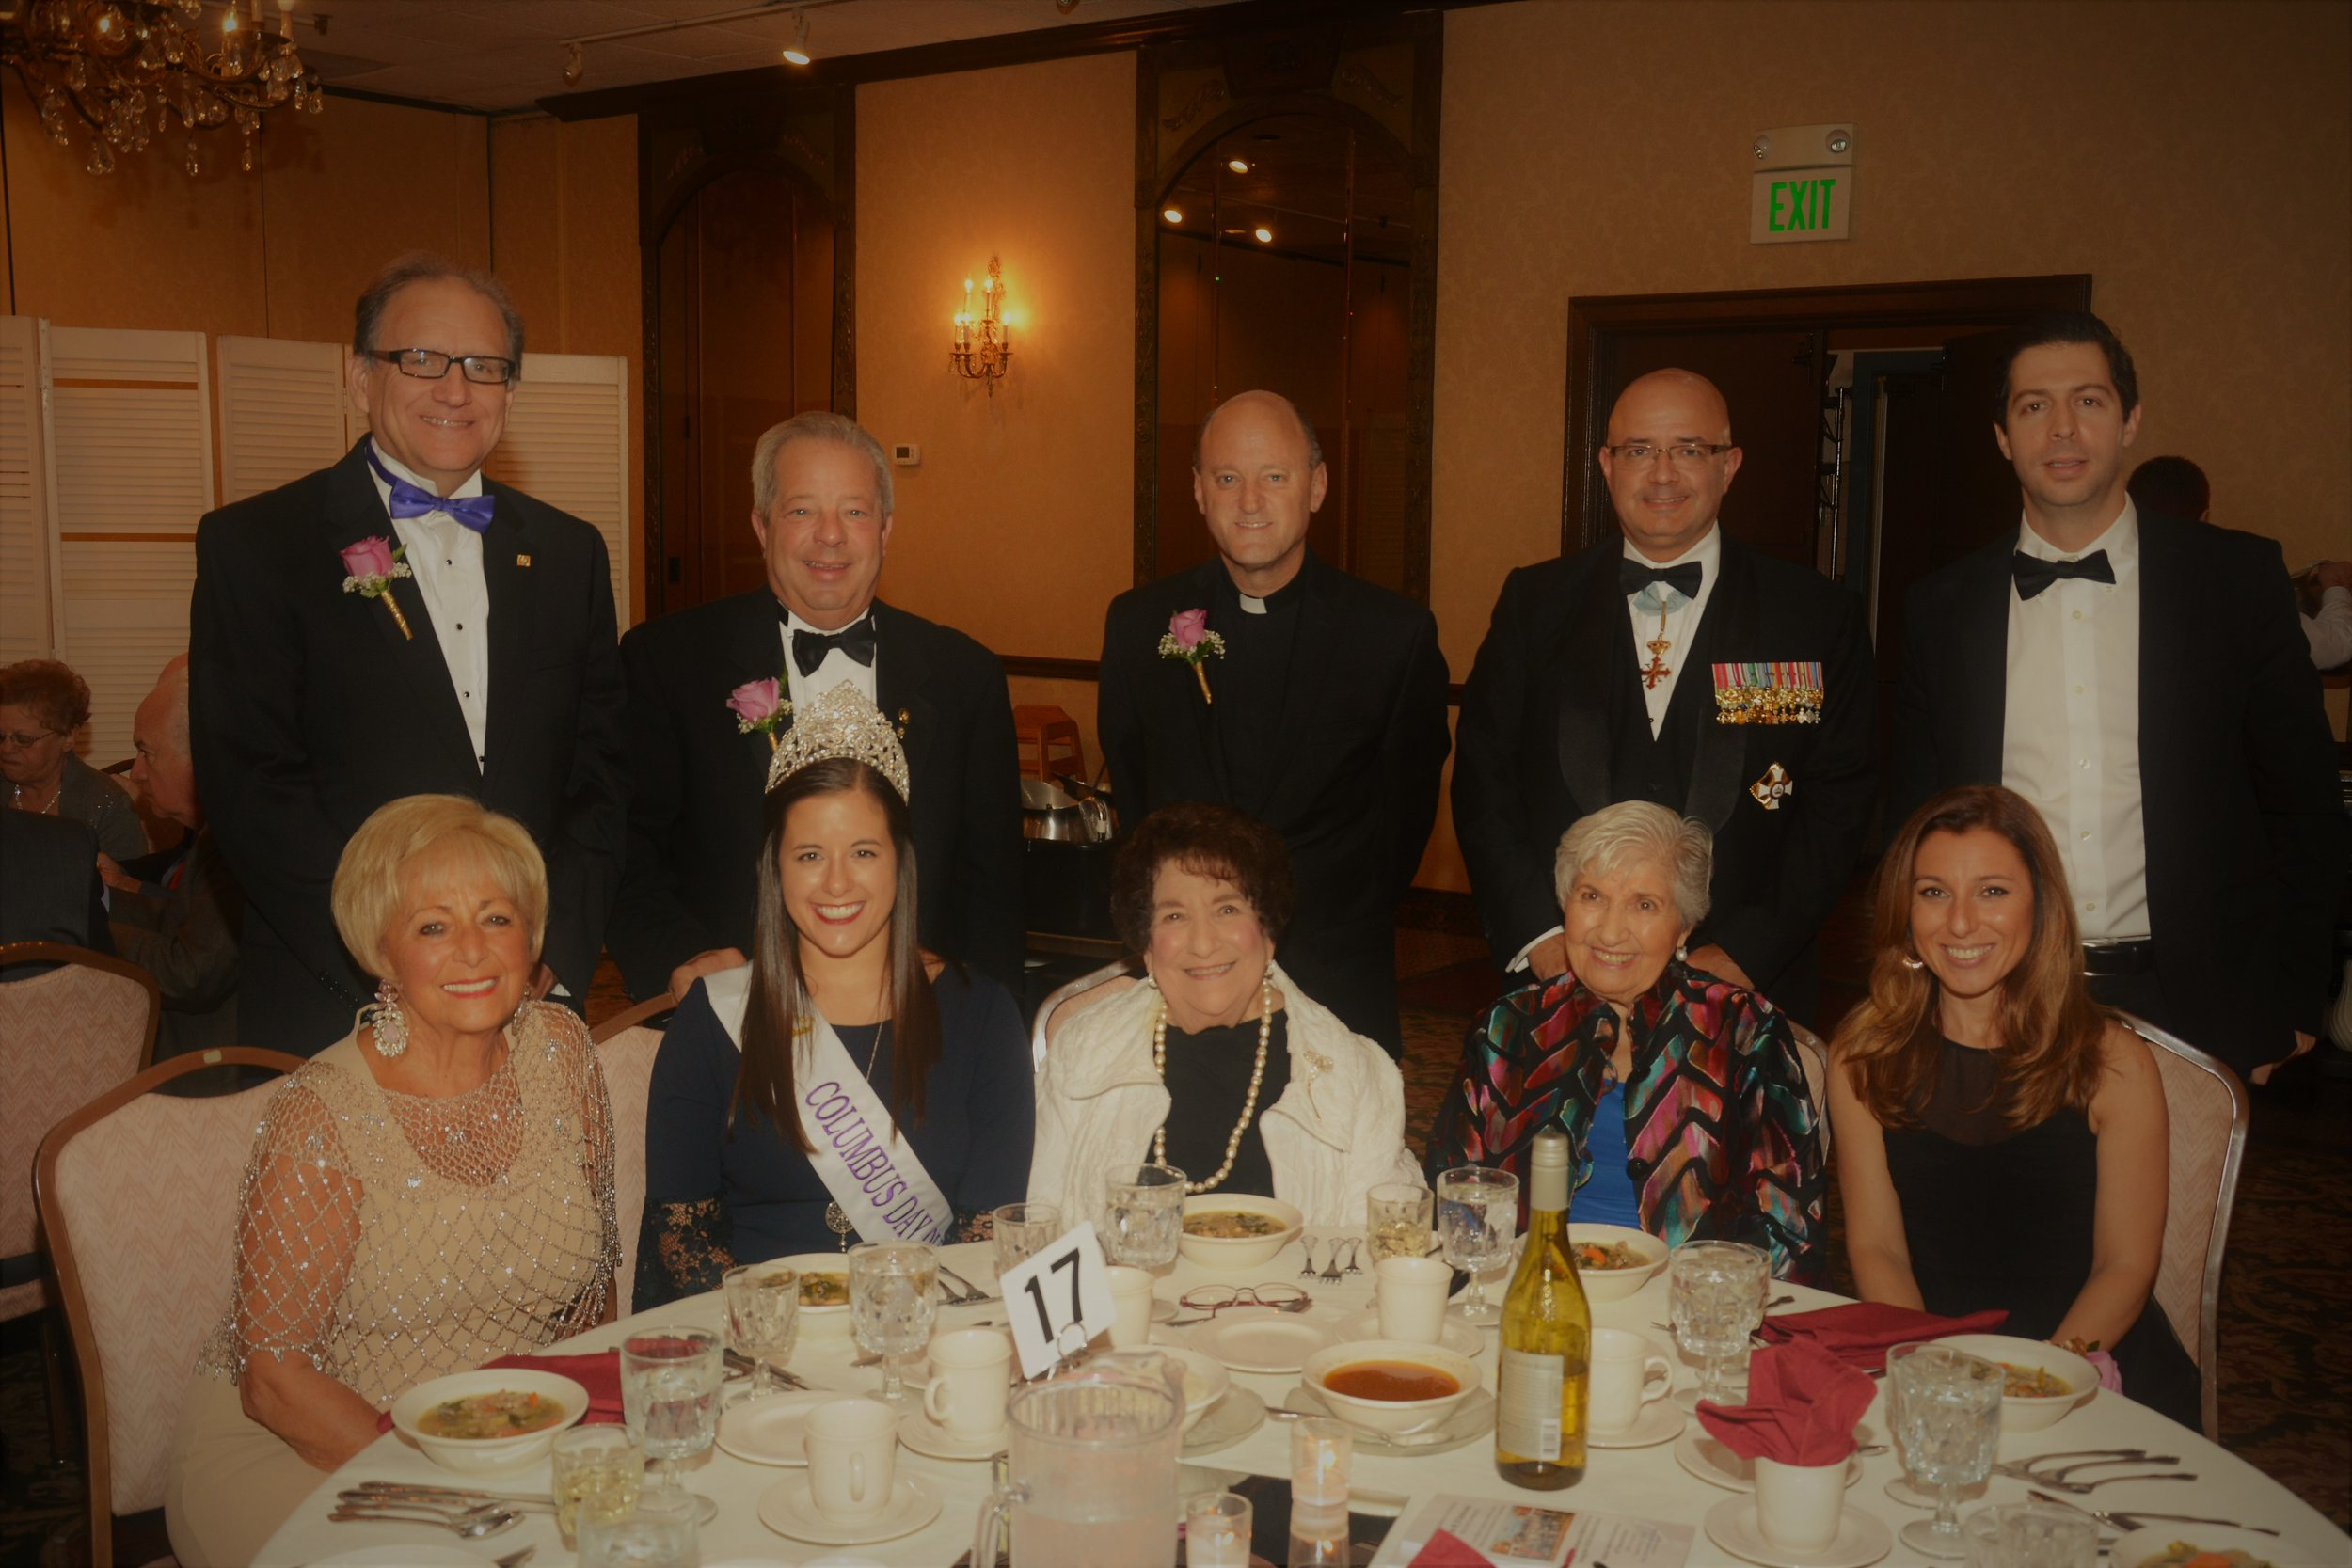 - Attending the banquet were Ms. Manuela Principe, Deputy Consul of Italy, Elizabeth Cavalieri-Konopacki, Columbus Queen, JoAnn Serpico, Executive Director of JCCIA, Rev. John Belmonte, OSIA Chaplain, Rev. Anthony Pizzo, IAET Chaplain, Grand Lodge Council Officers, lodge presidents and members from the filial lodges.